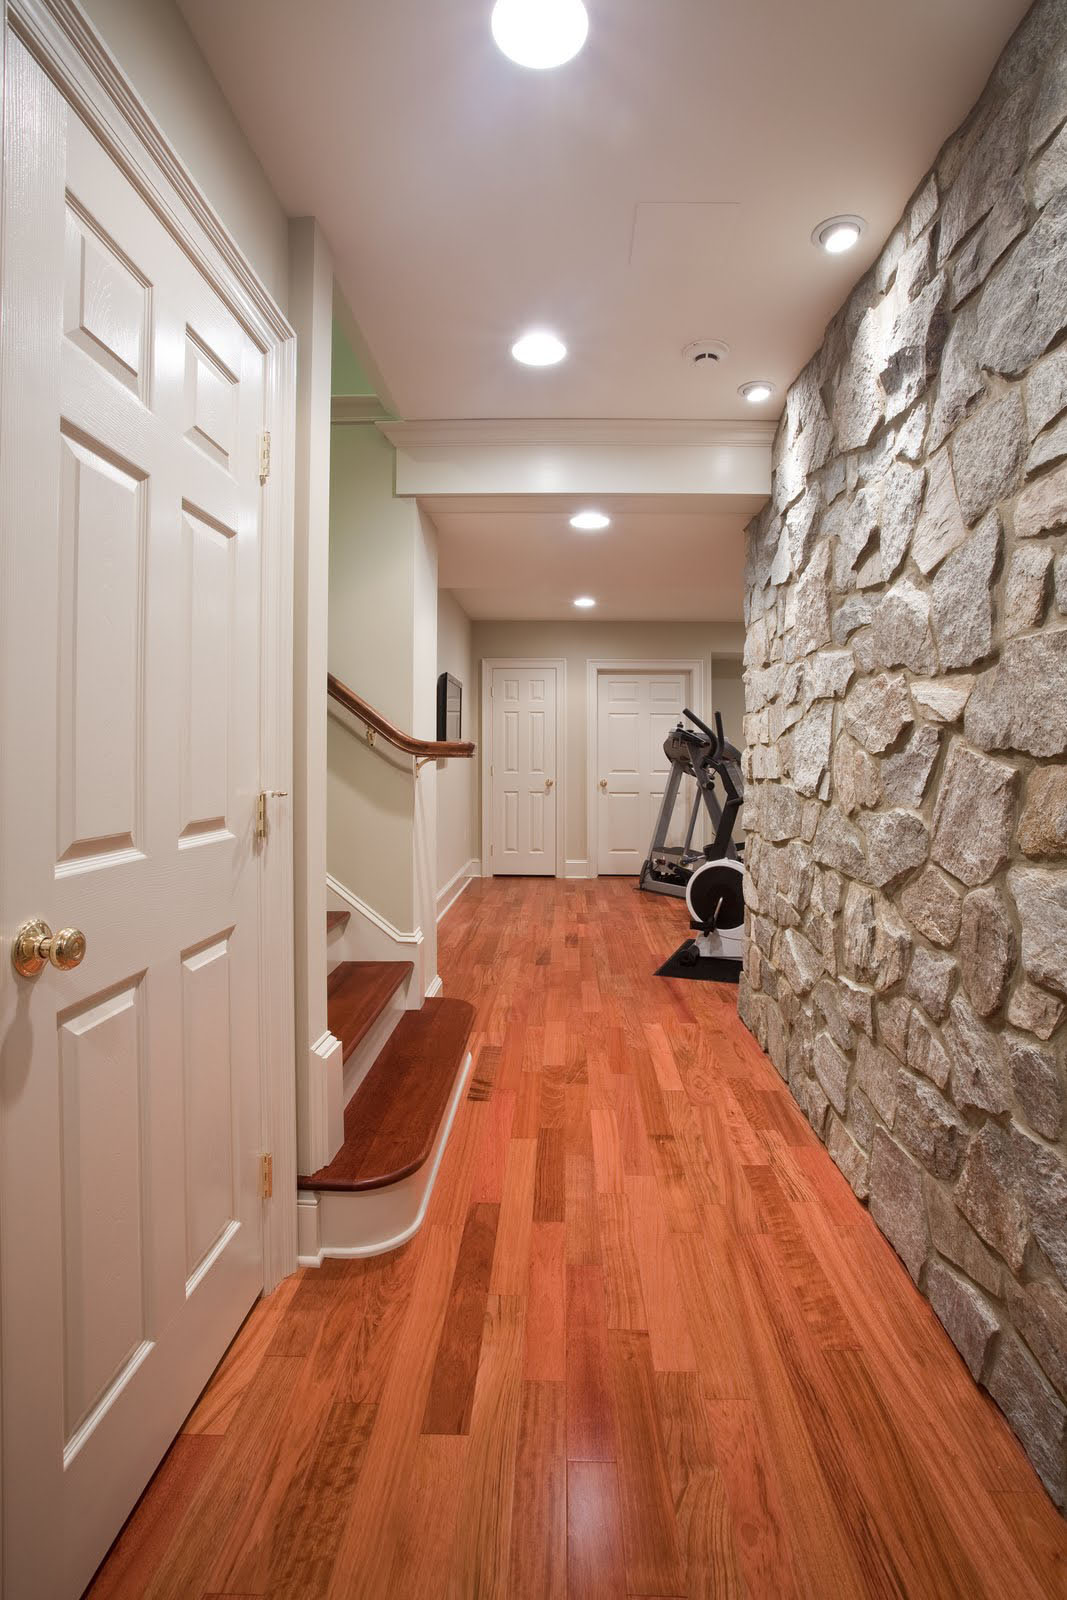 Basement Renovation With Rustic Stone Walls | iDesignArch ...